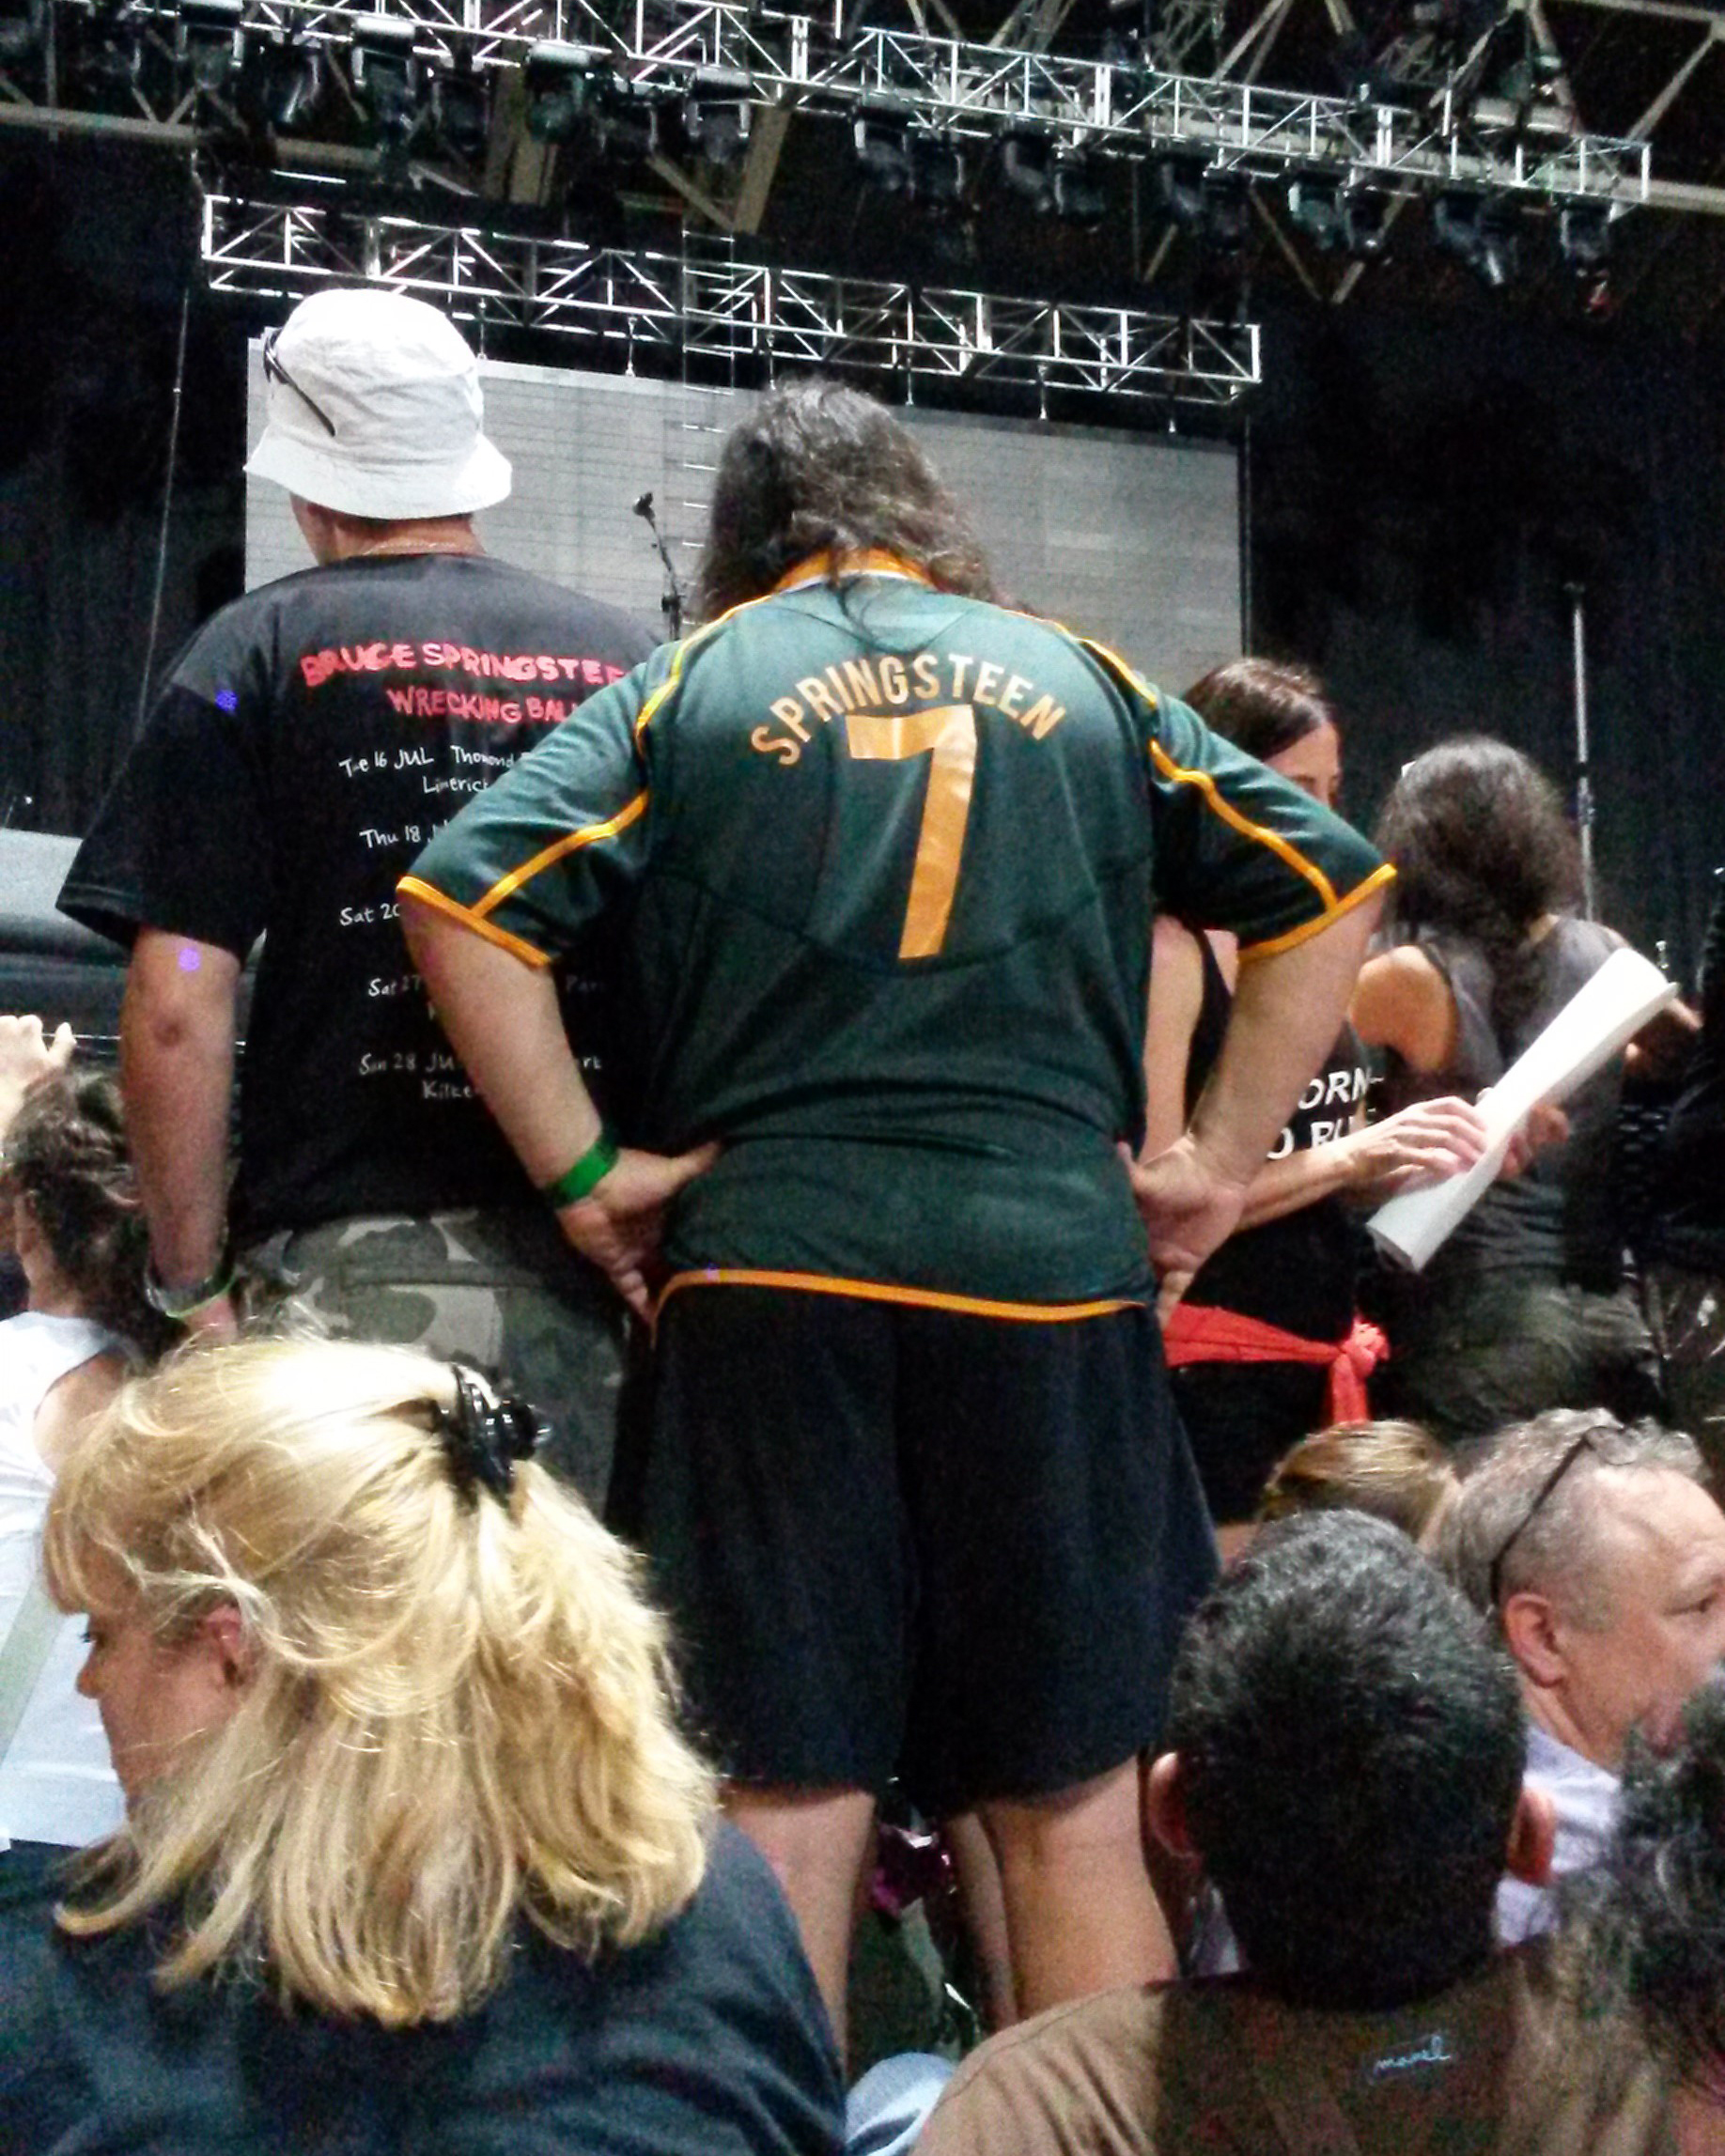 A Proudly Springsteen, I mean, South African supporter